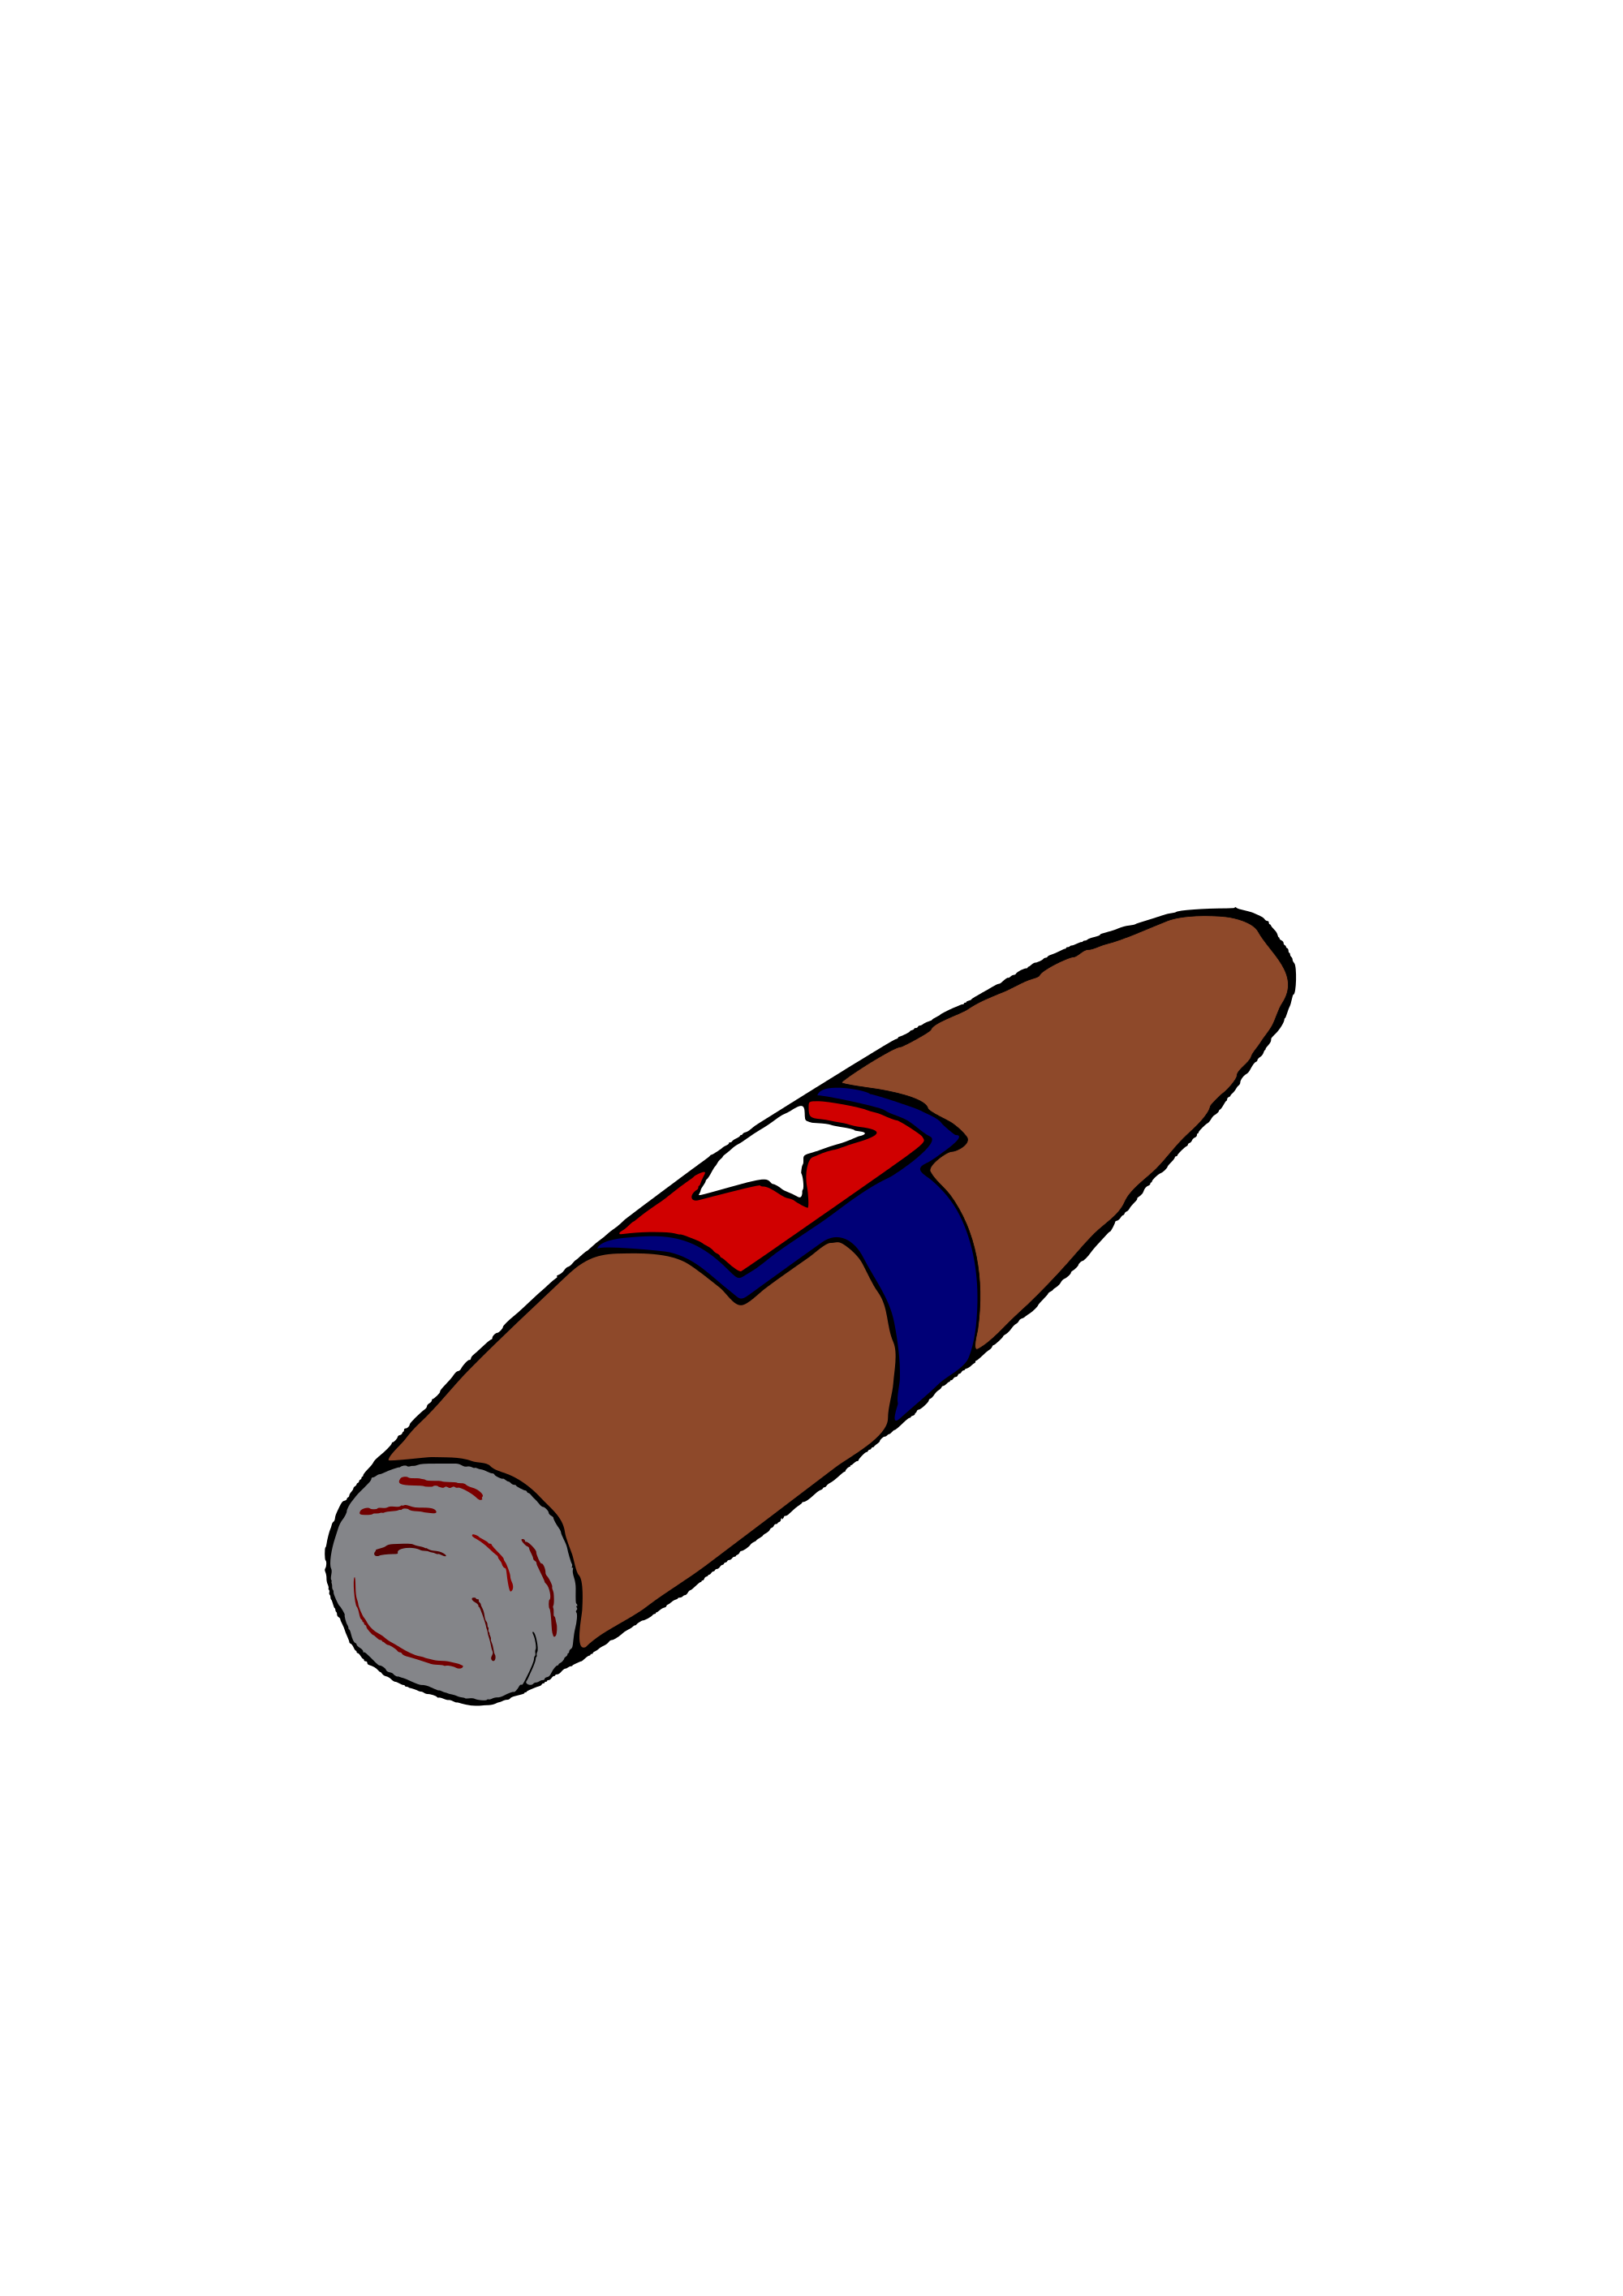 Free Cigar Cliparts, Download Free Clip Art, Free Clip Art on.